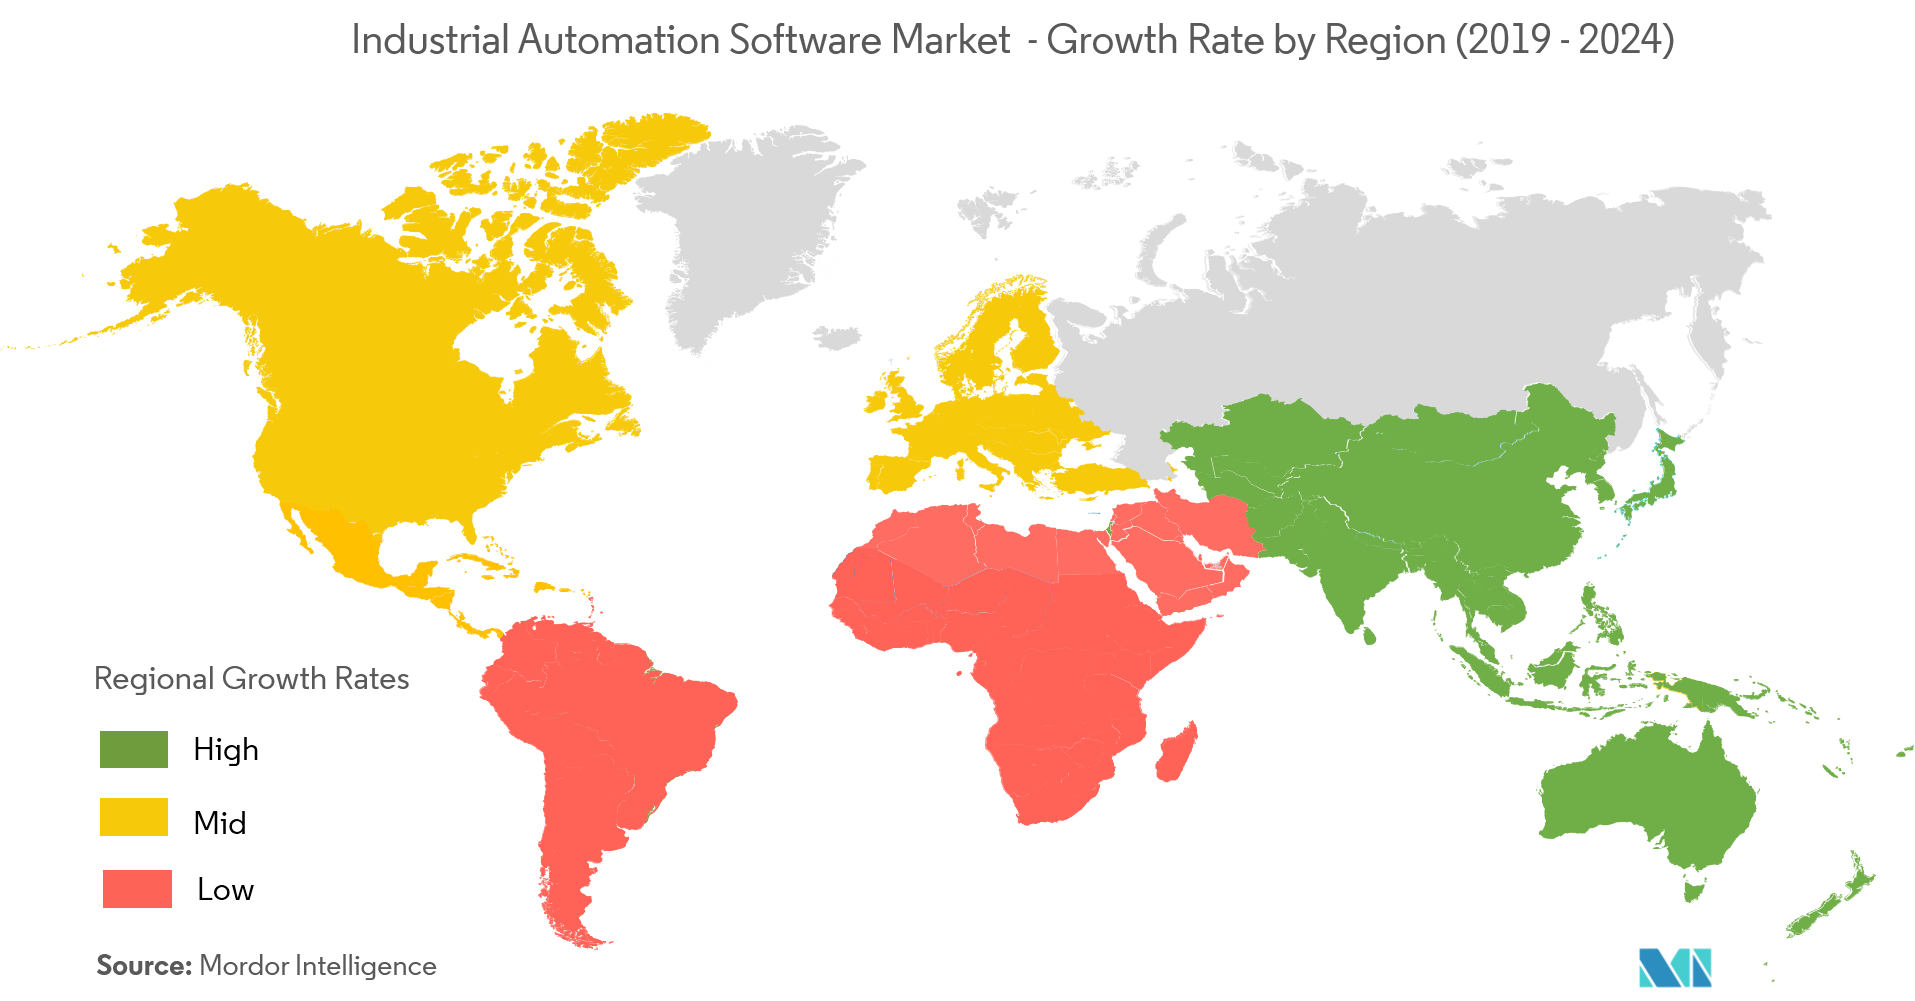 Regional Growth_Industrial Automation software Market